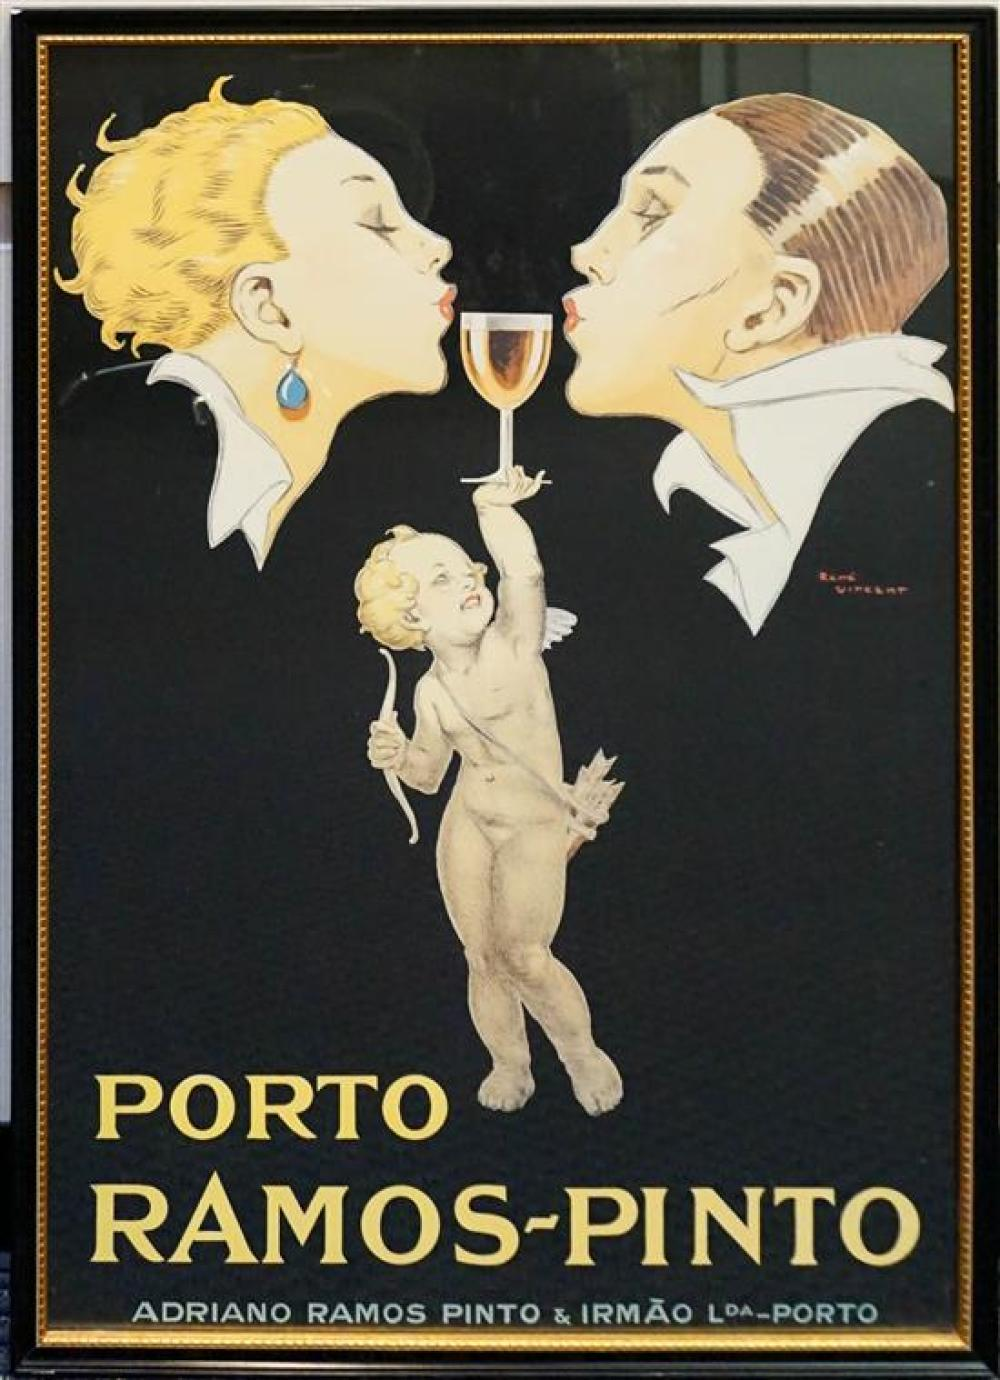 Framed Porto Ramos-Pinto Reproduction Poster, Frame: 40 x 28-1/2 in